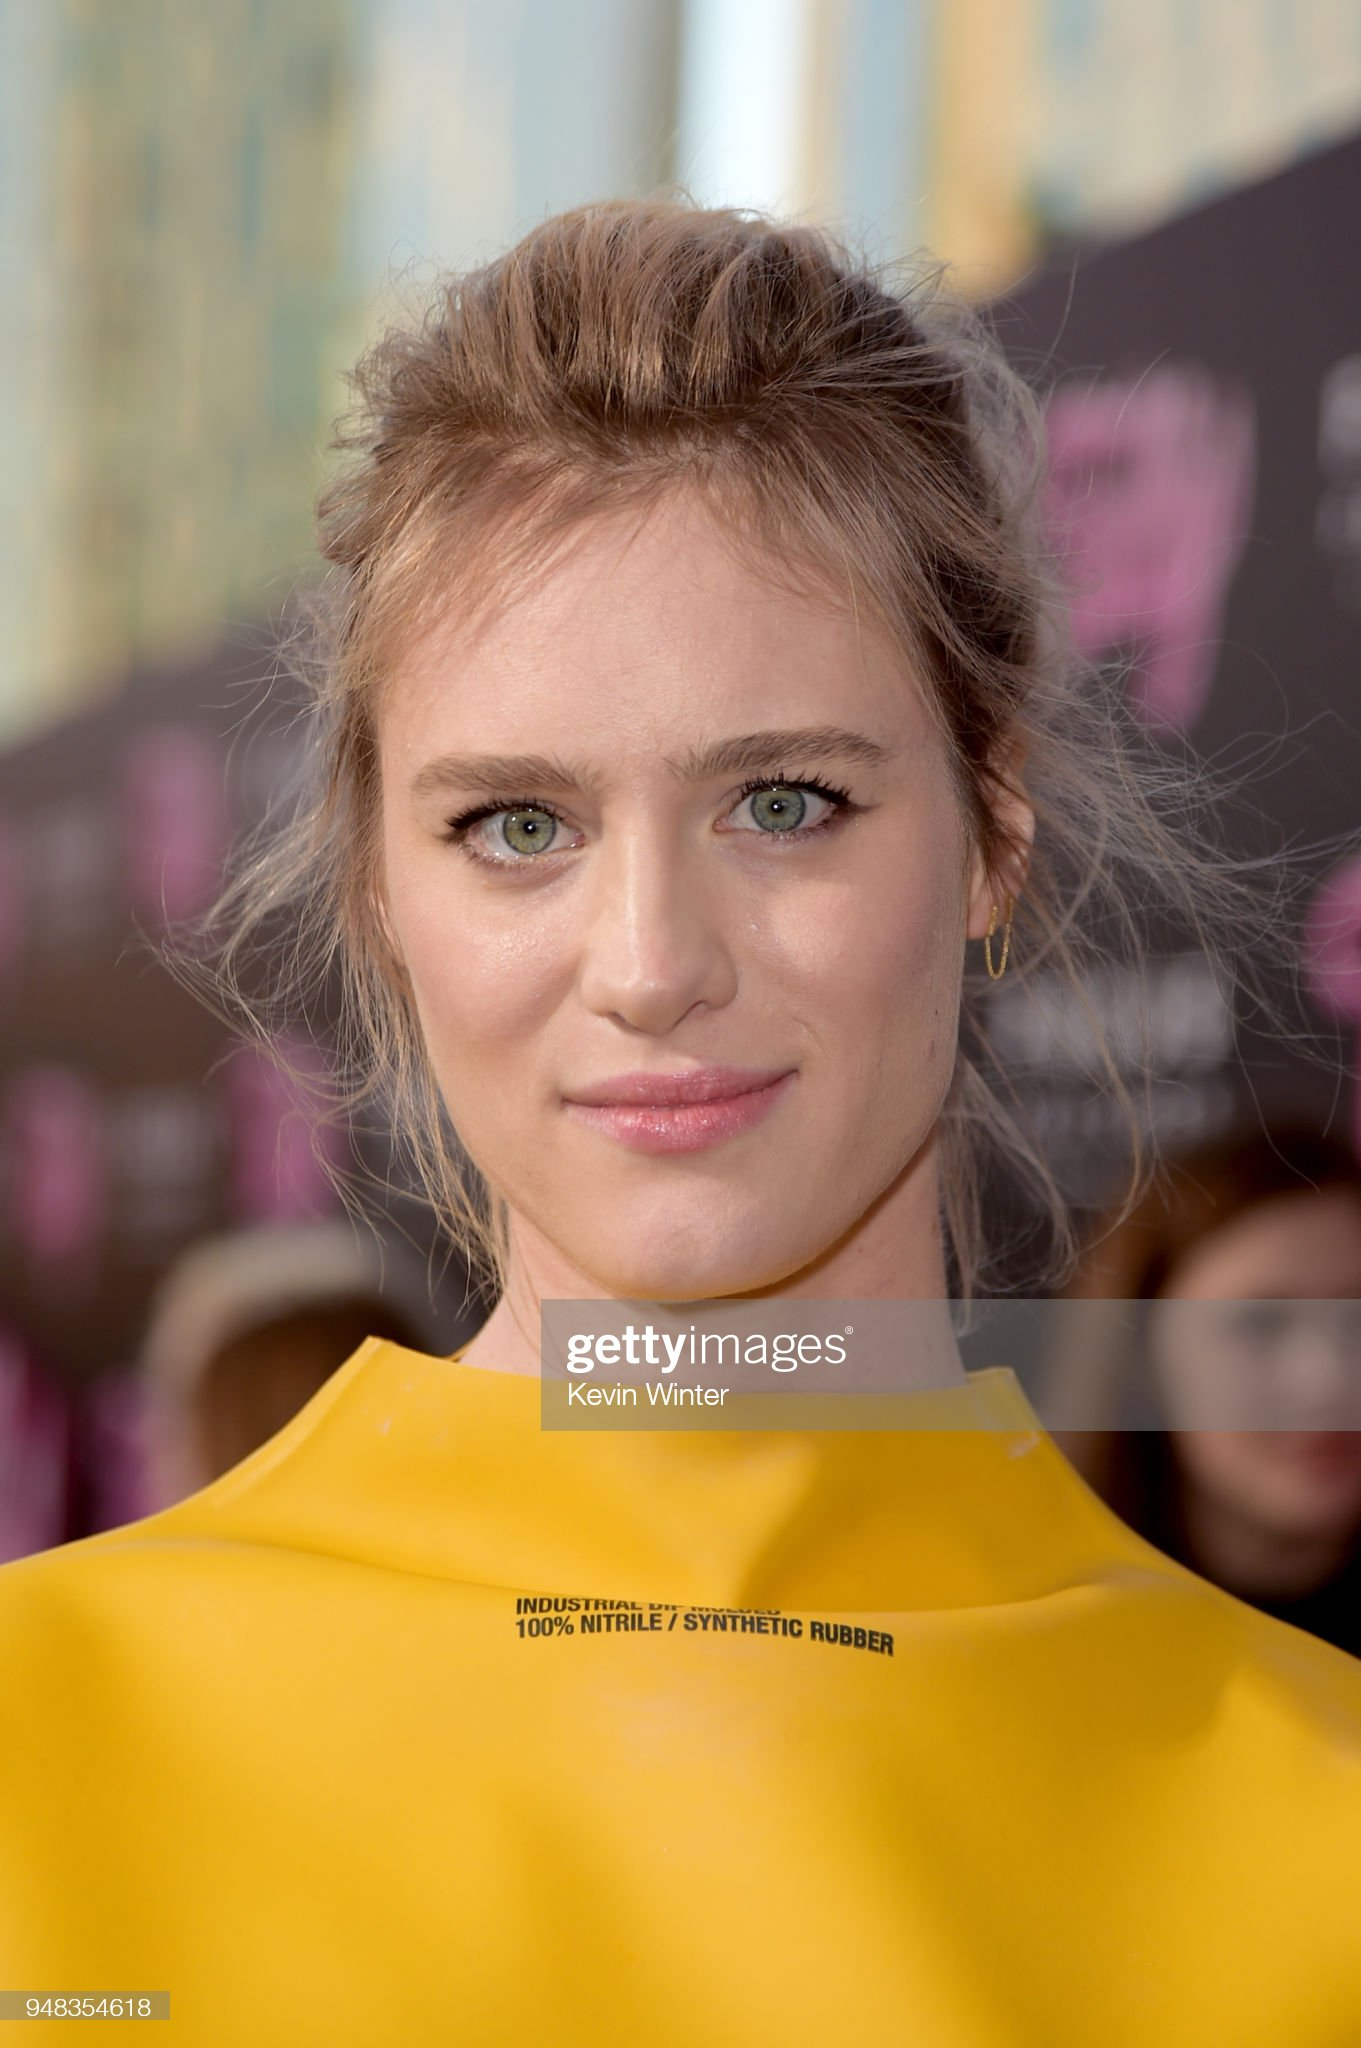 ¿Cuánto mide Mackenzie Davis? - Real height Mackenzie-davis-attends-the-premiere-of-focus-features-tully-at-regal-picture-id948354618?s=2048x2048